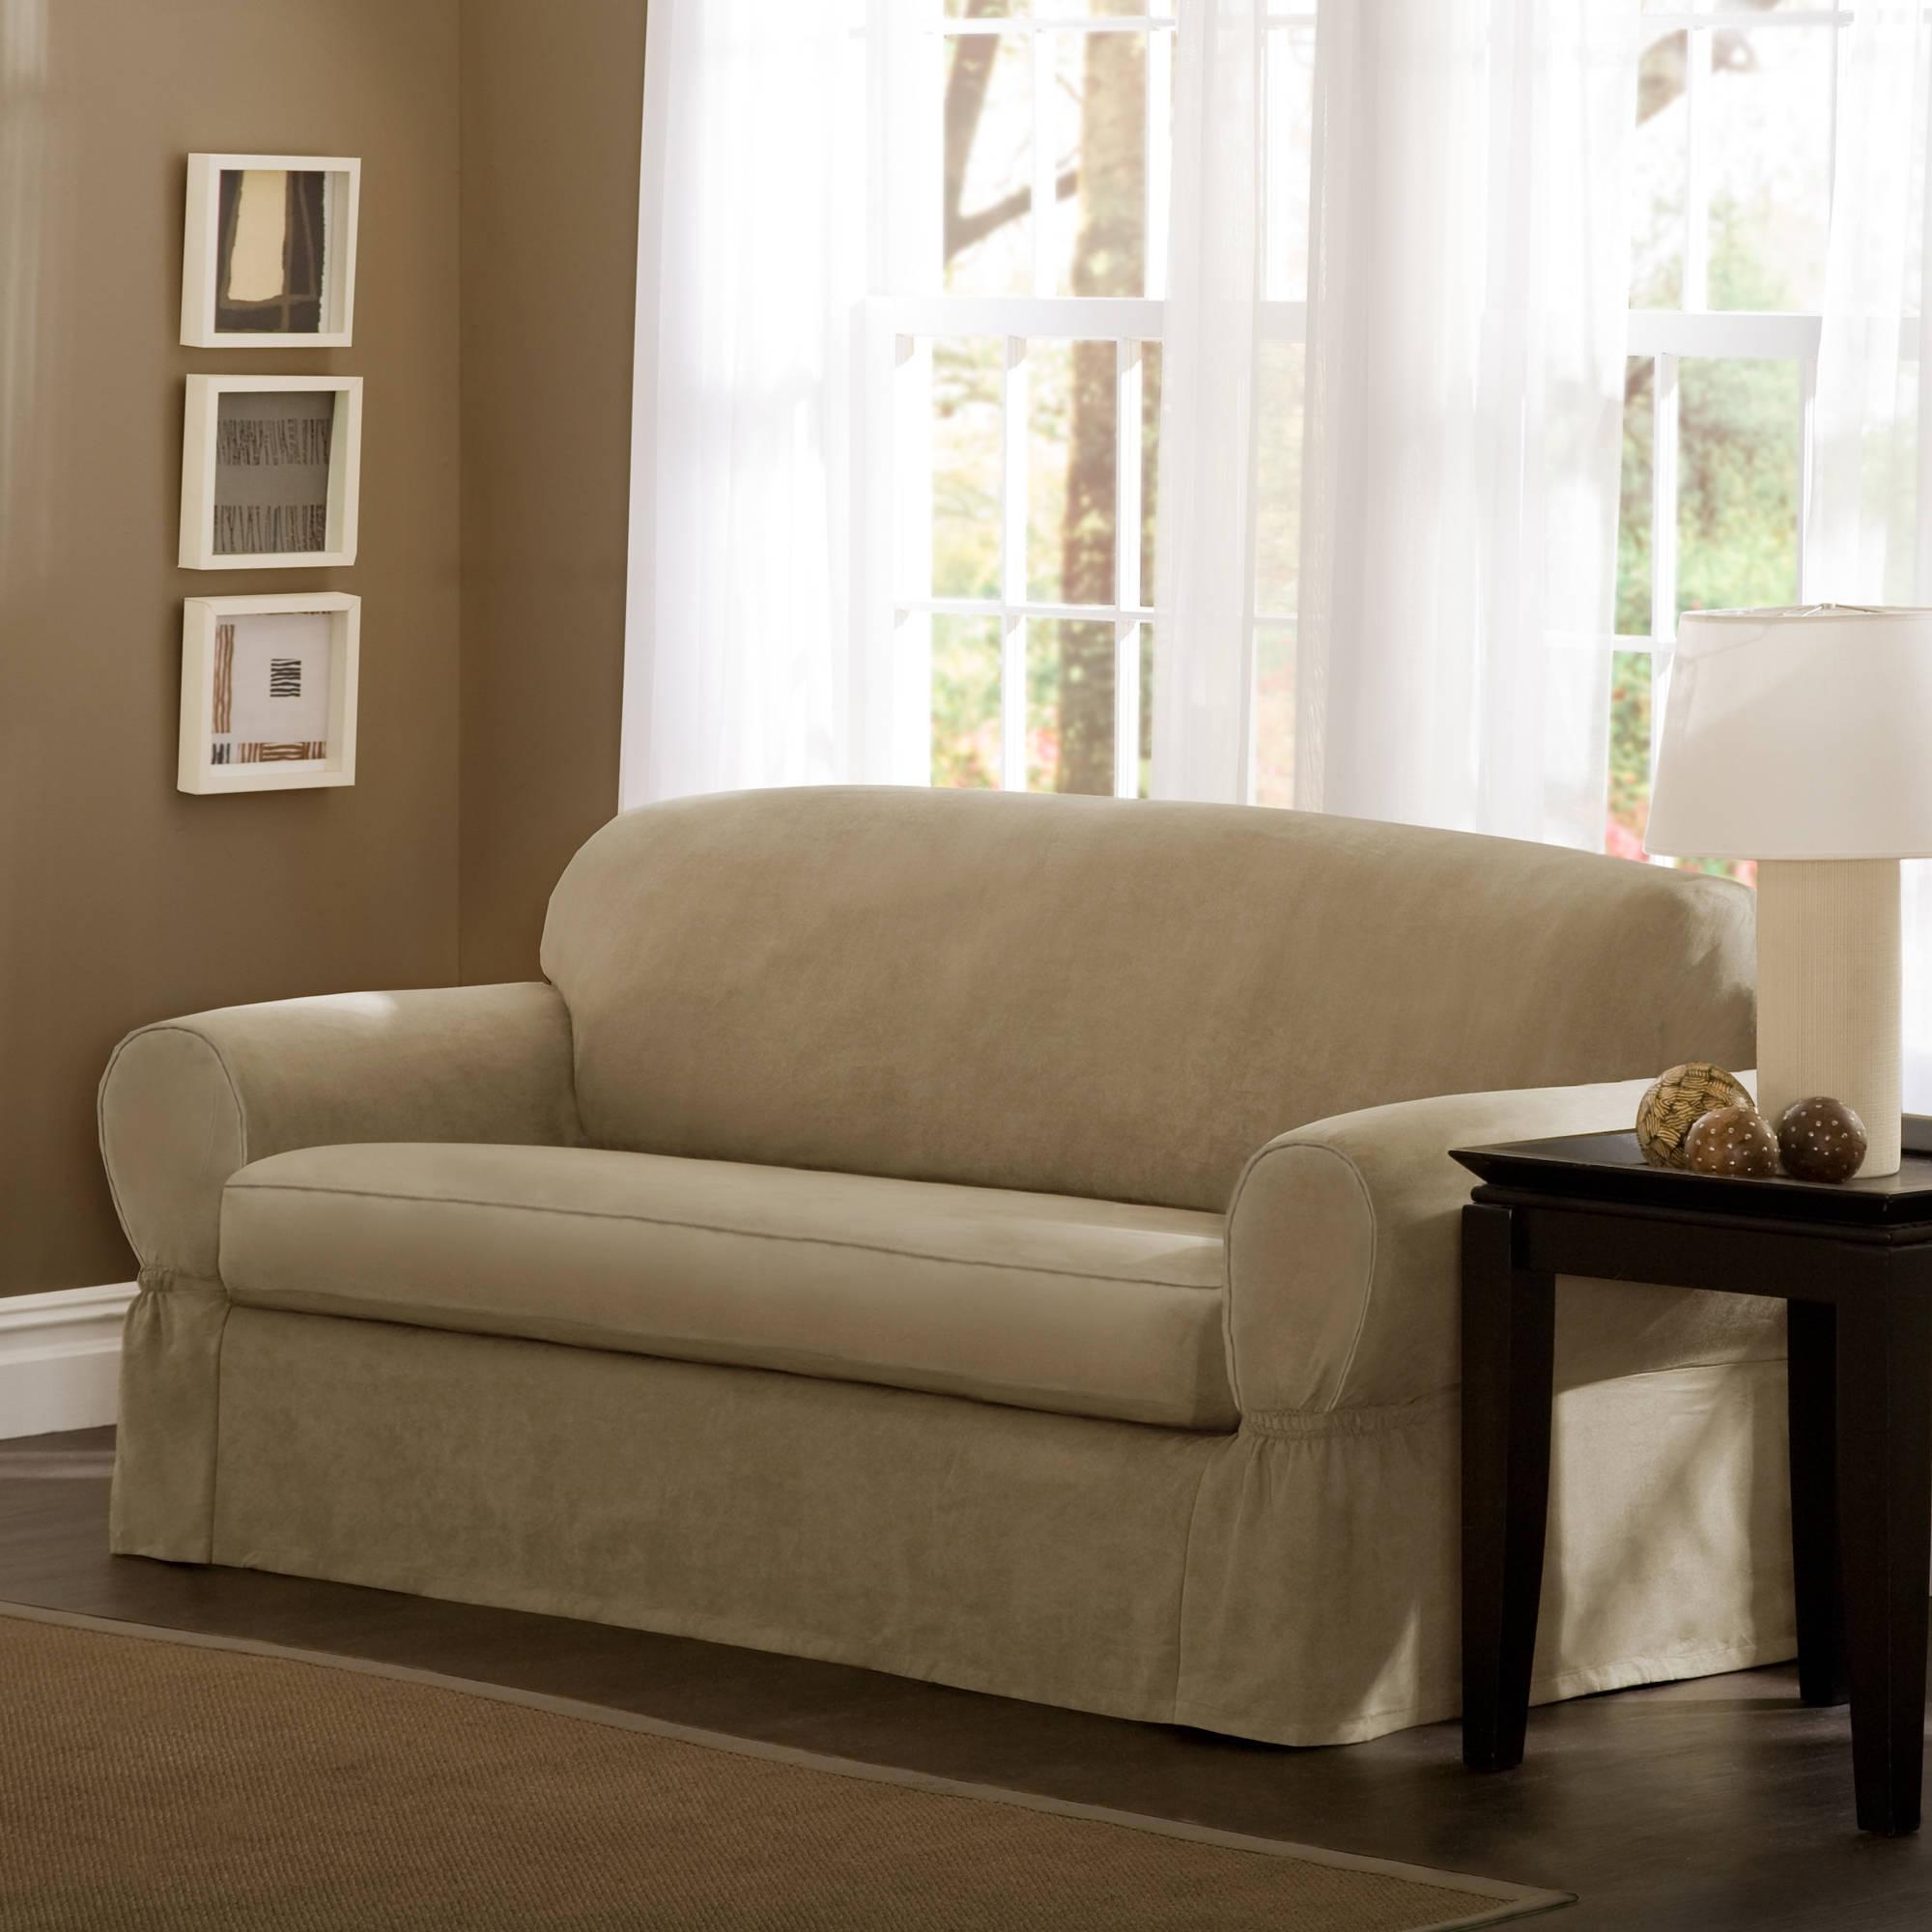 Living Room : Piece T Cushion Couch Cover Sofa Slipcover Sofas Pertaining To 2 Piece Sofa Covers (View 20 of 27)